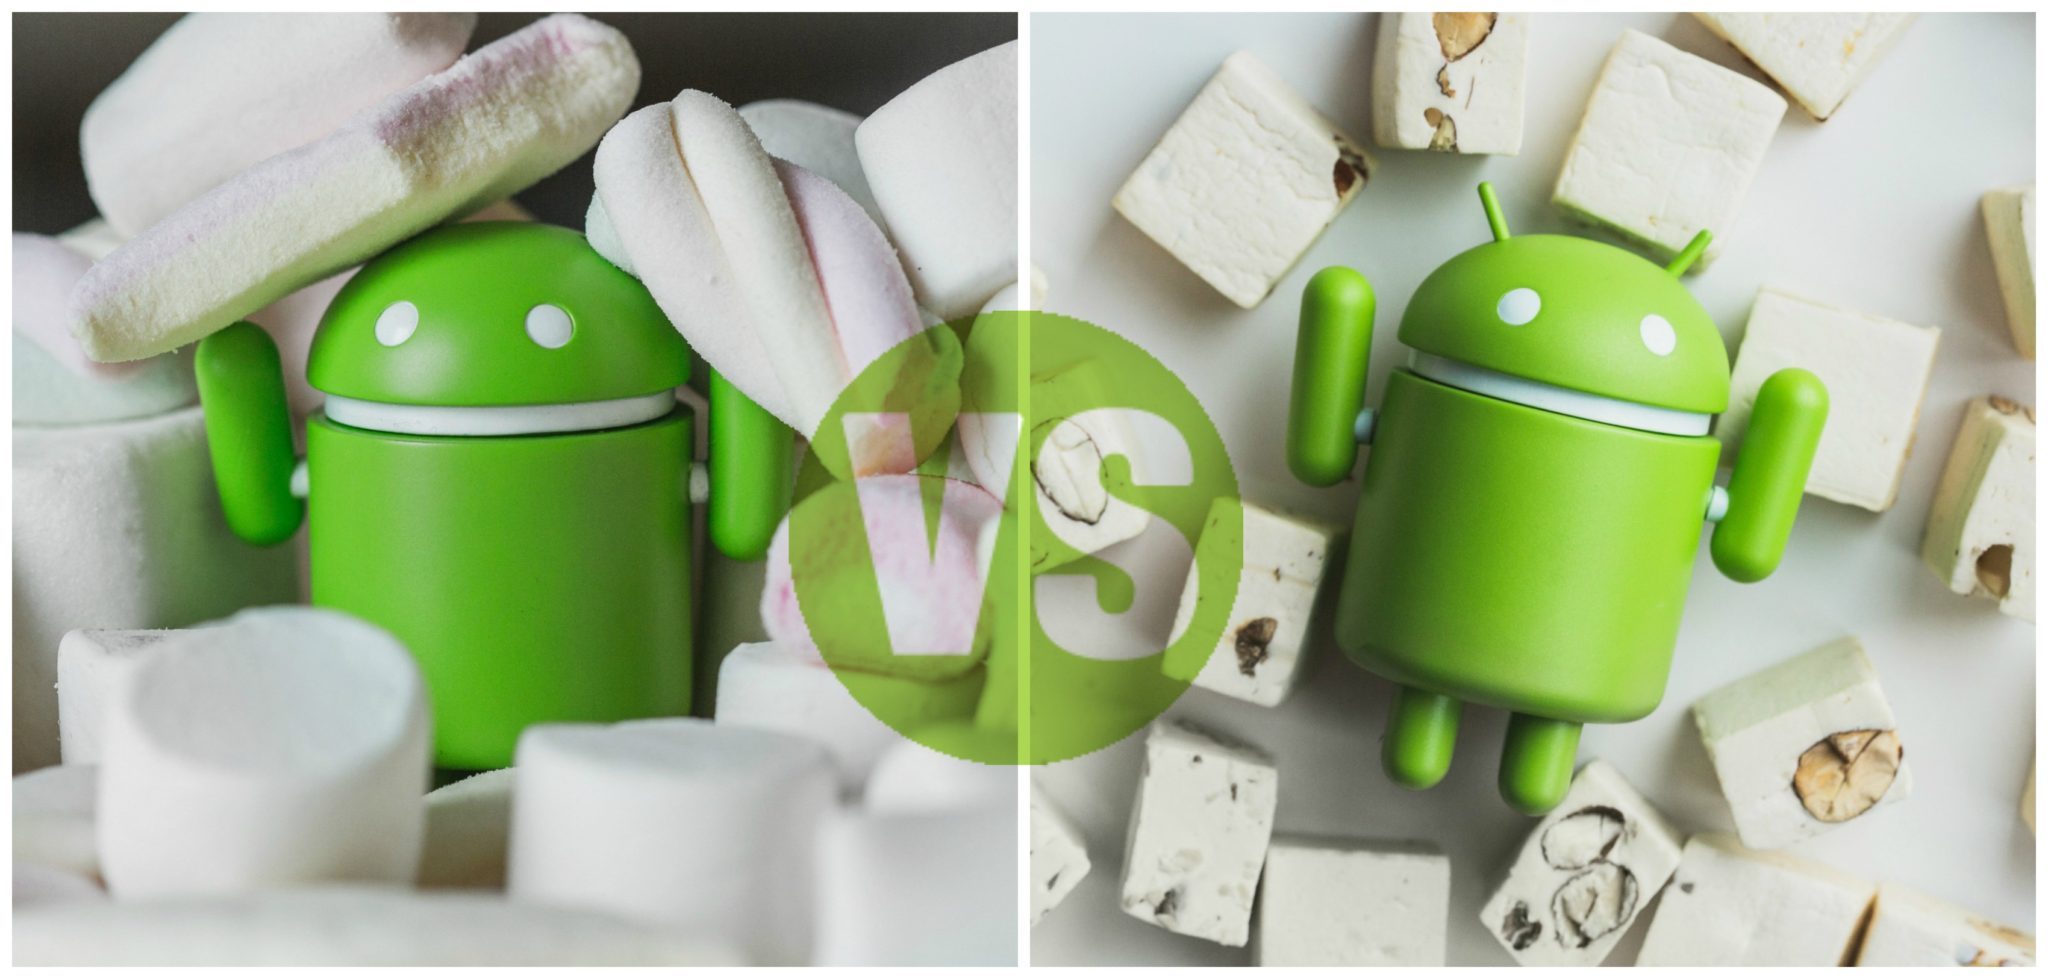 Android 6.0 Marshmallow vs Android 7.0 Nougat